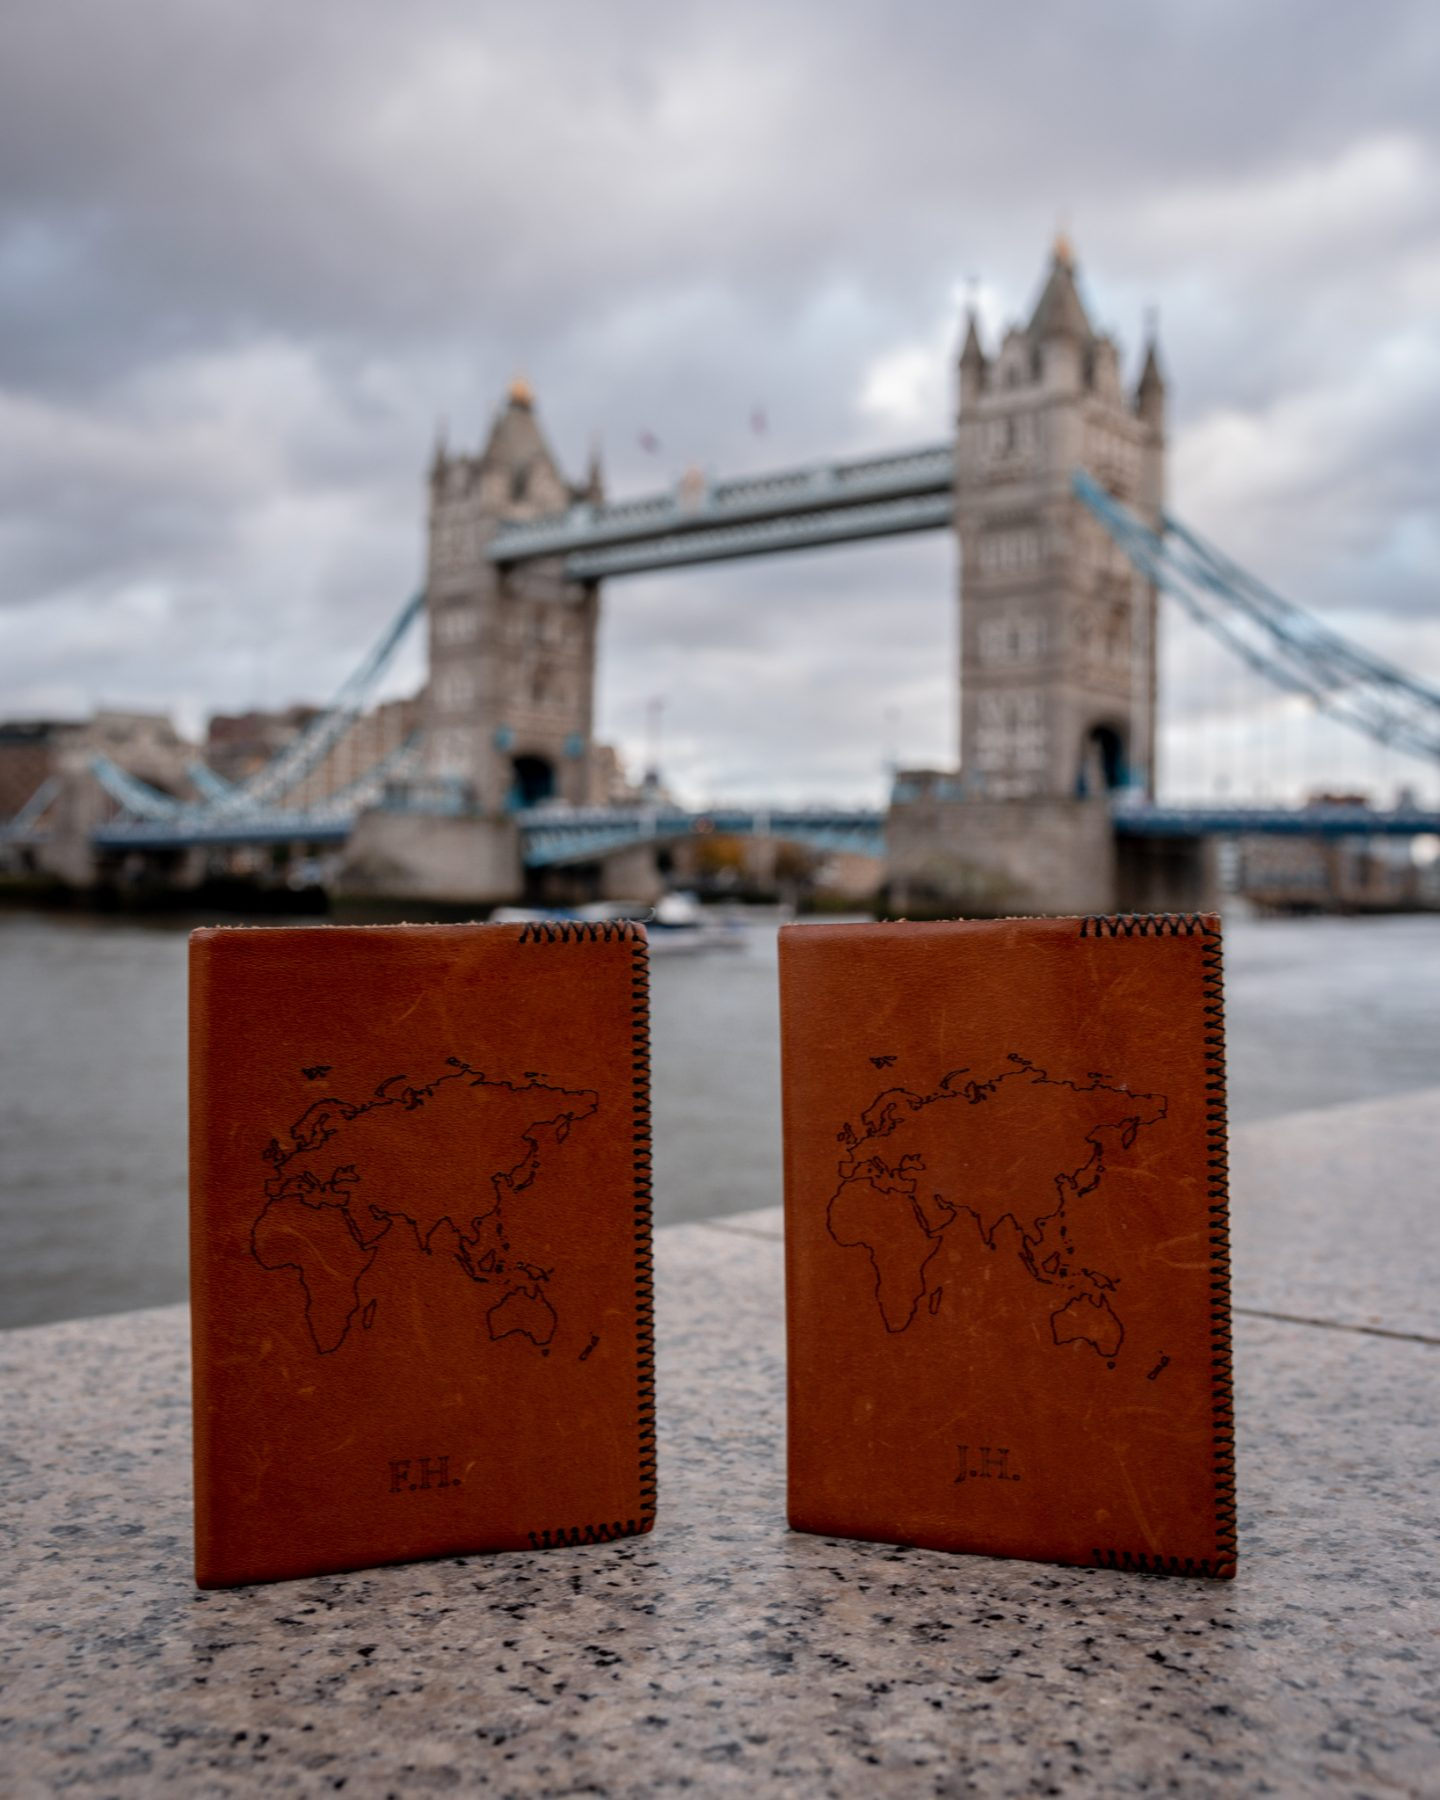 towerbridge London and two passports in the front